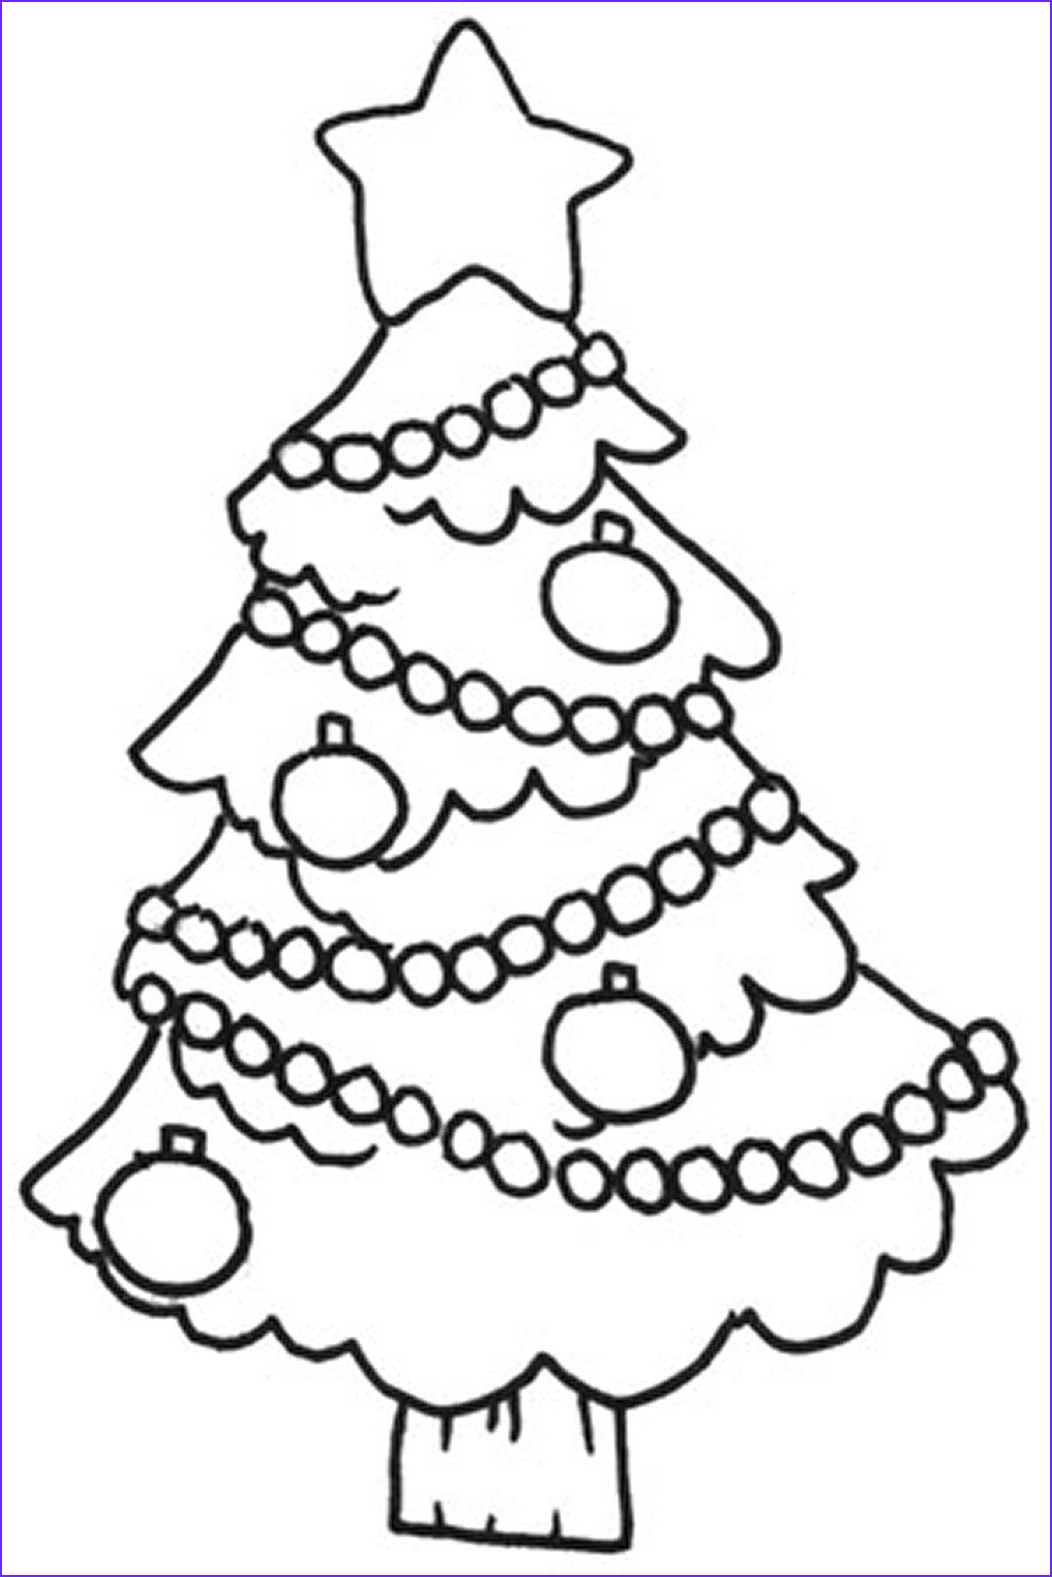 Christmas Coloring Sheets Awesome Photography Free Printable Christmas Tree Coloring Pages for Kids